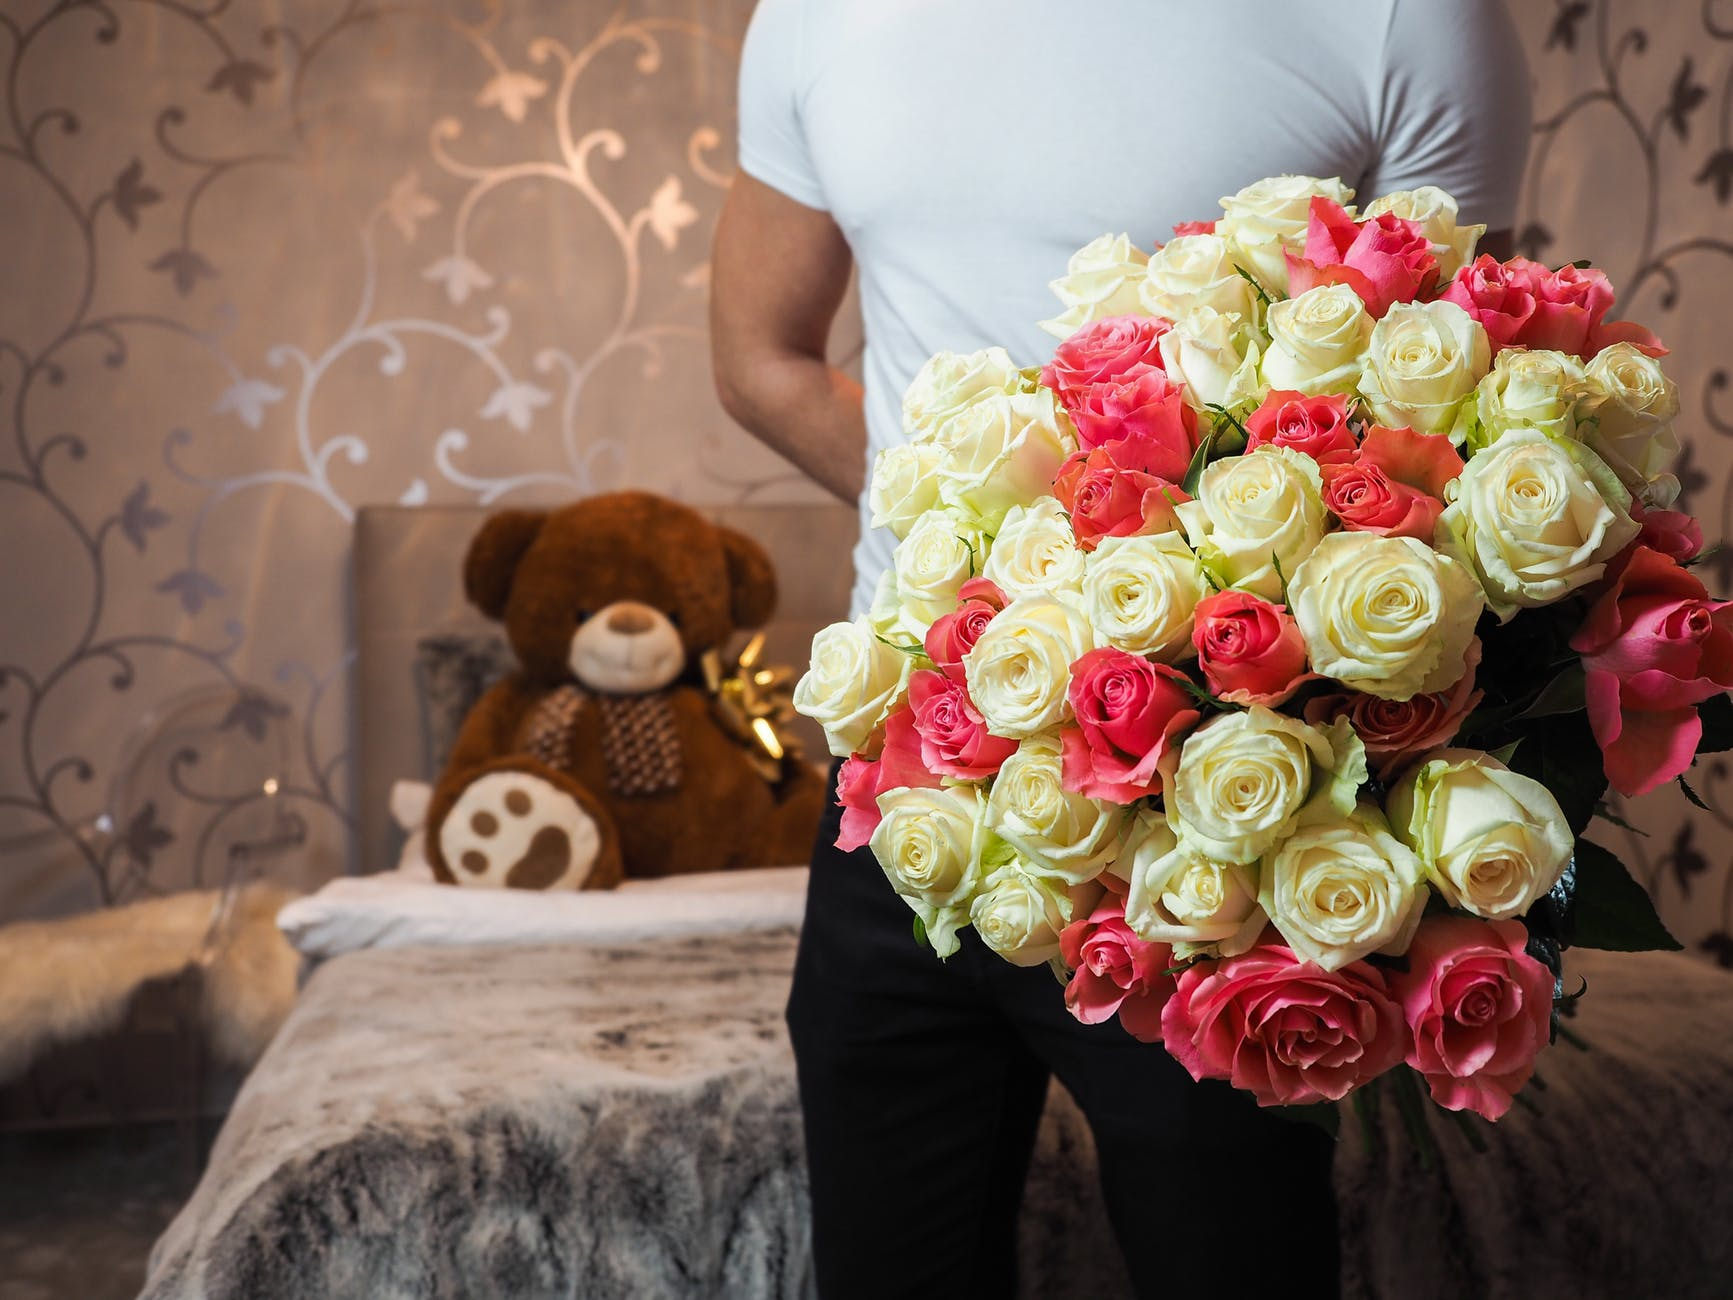 10 Special Gift Ideas for Your Loved Ones Are Going to Cherish on Their Special Day